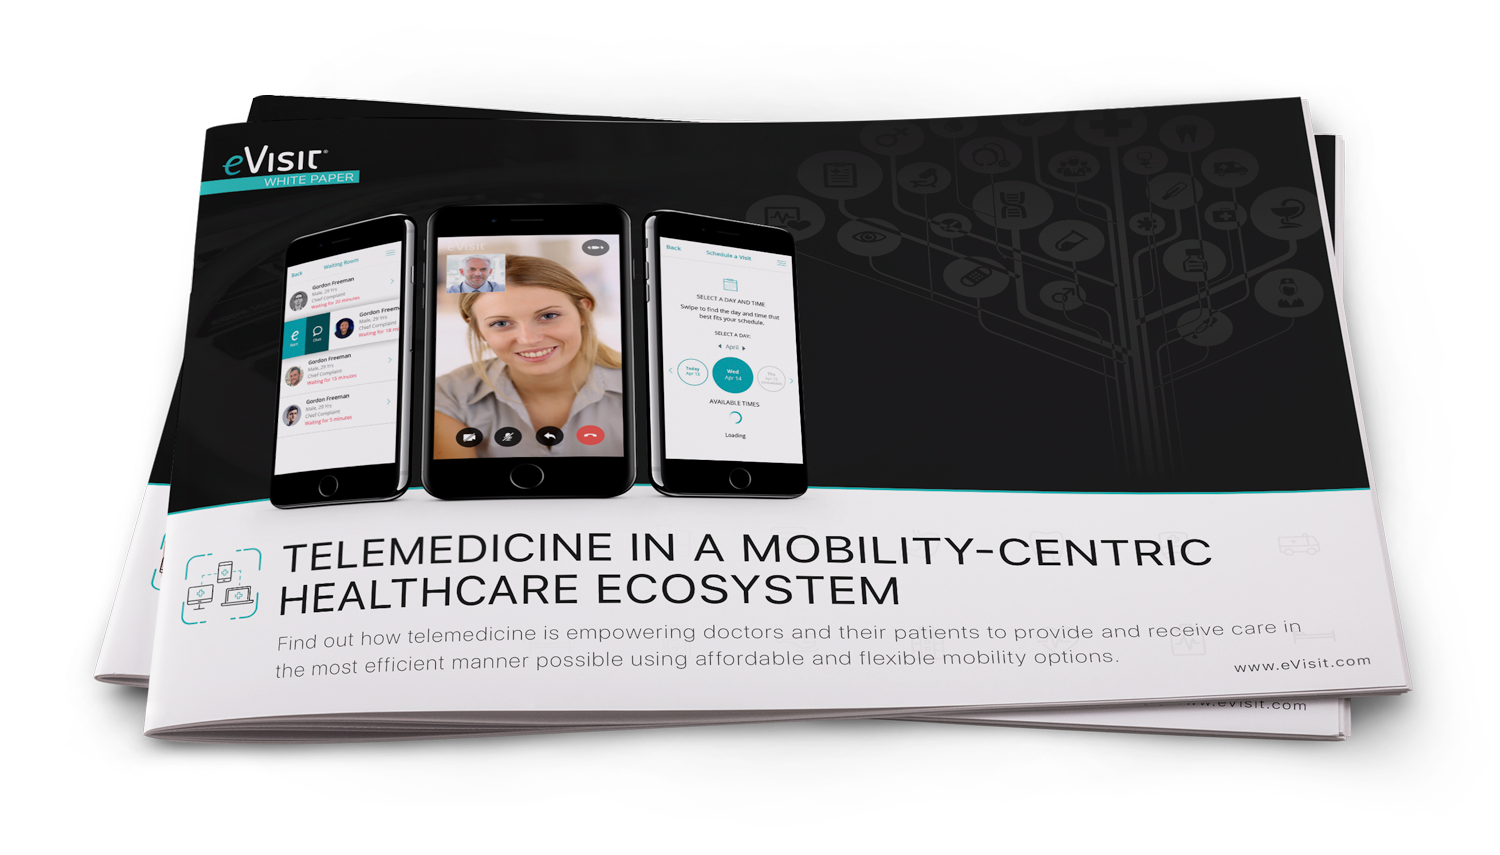 Telemedicine In a Mobility-Centric Healthcare Ecosystem [White Paper]